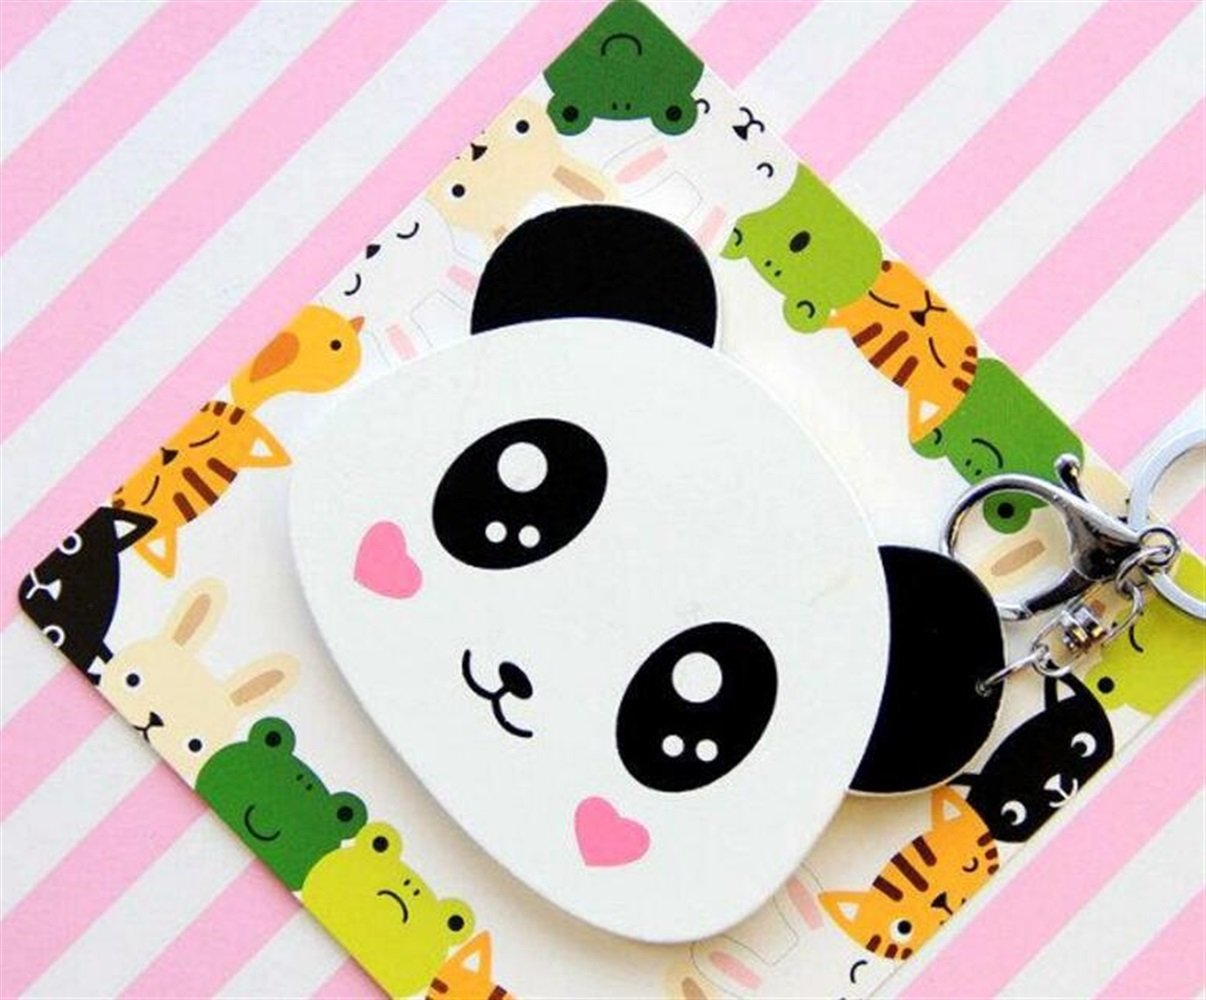 Yingealy Childrens Mirror Mini Cartoon Panda Shape Pattern Small Glass Mirrors Circles for Crafts Decoration Cosmetic Accessory